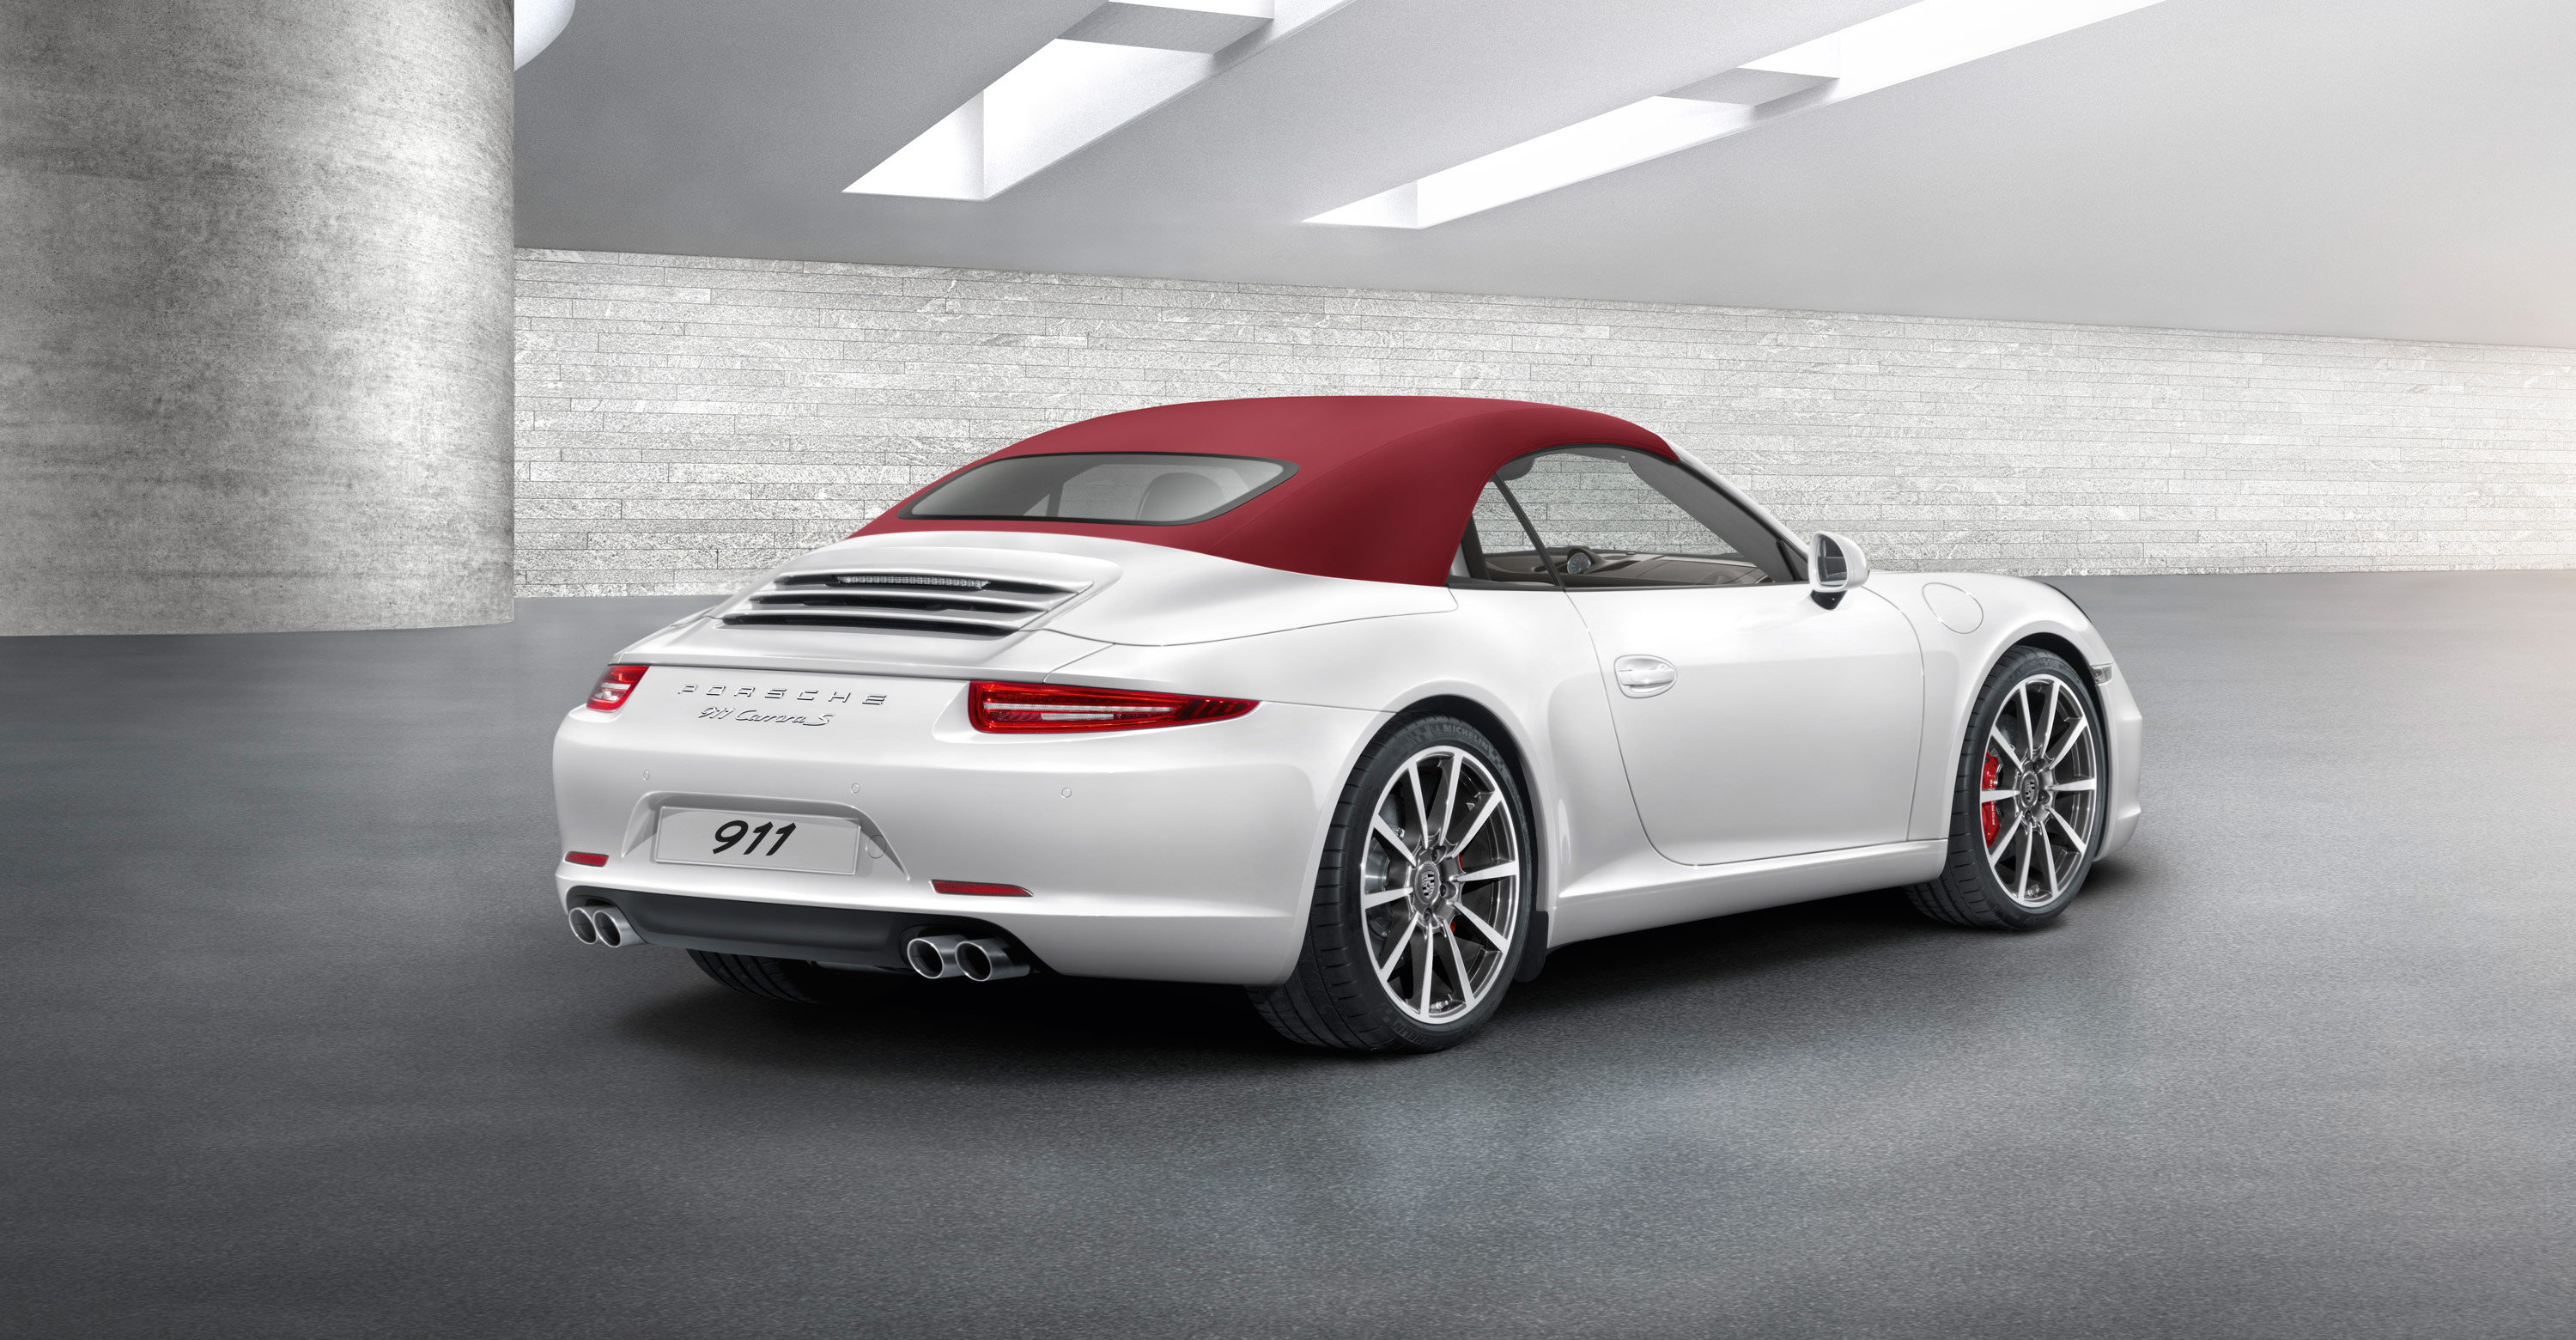 2012 white Porsche 911 Carrera S Cabriolet wallpapers 3000x1560